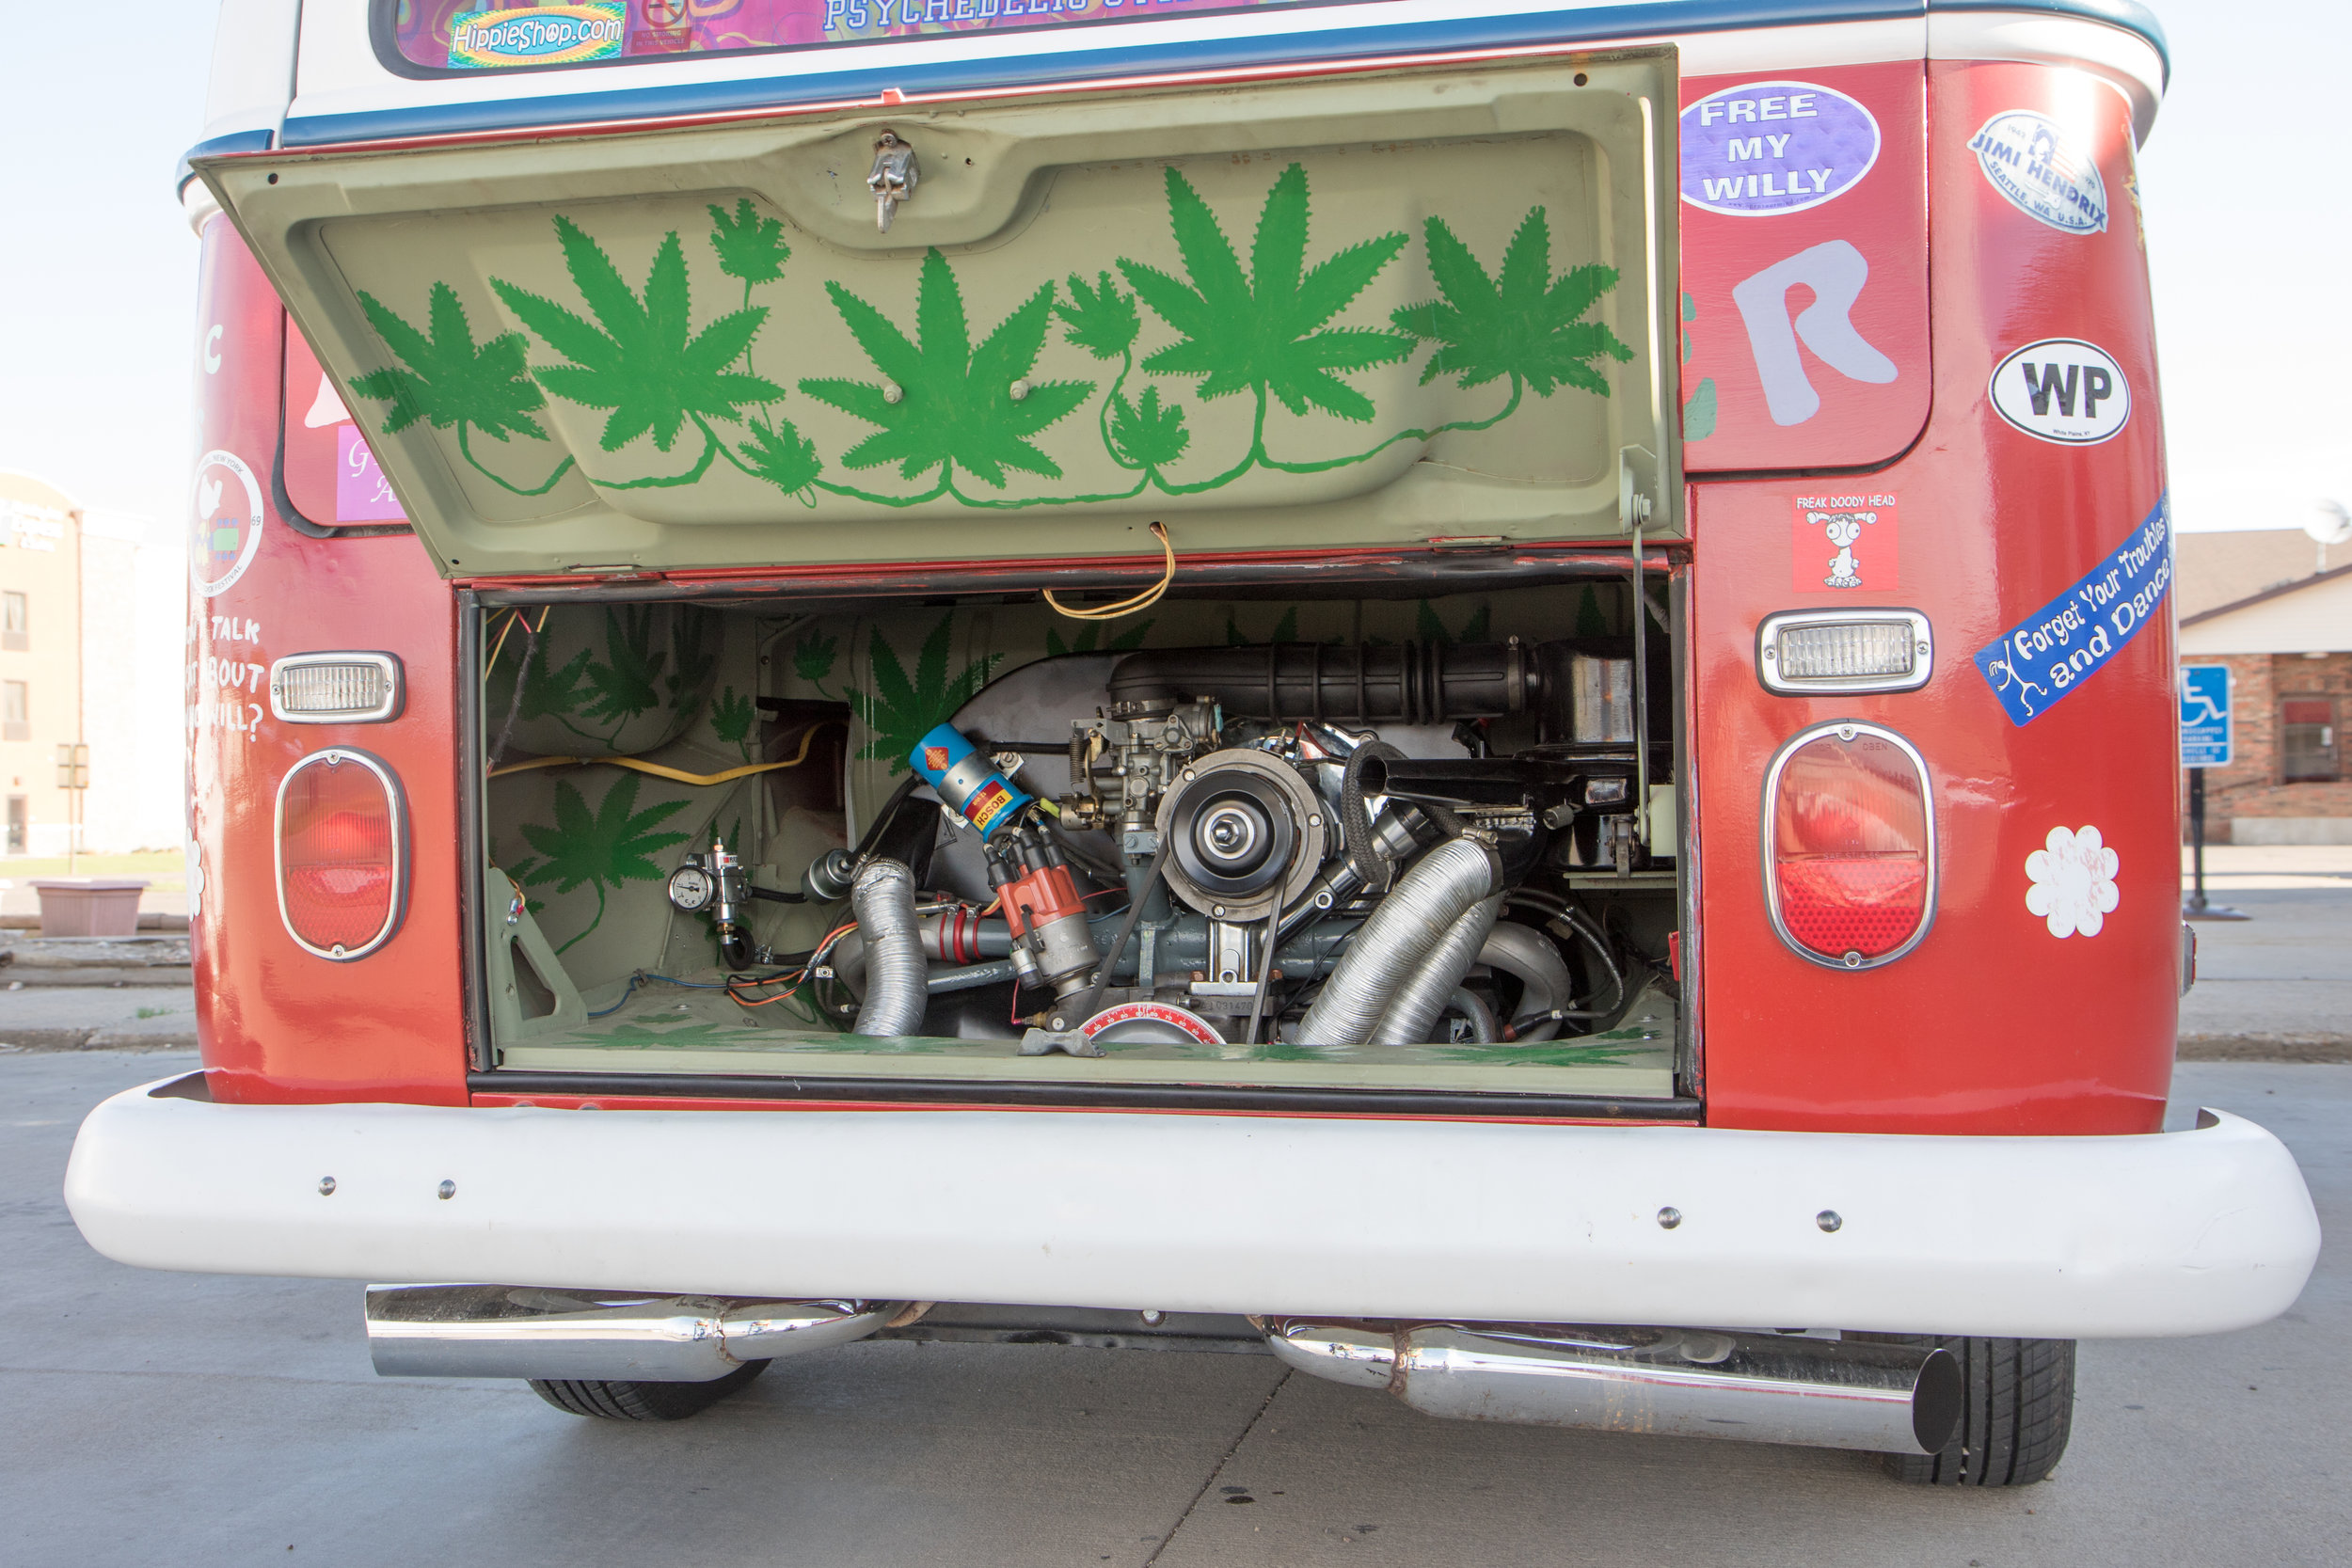 Hand-painted marijuana leaves dot the cramped engine compartment of the VW bus.